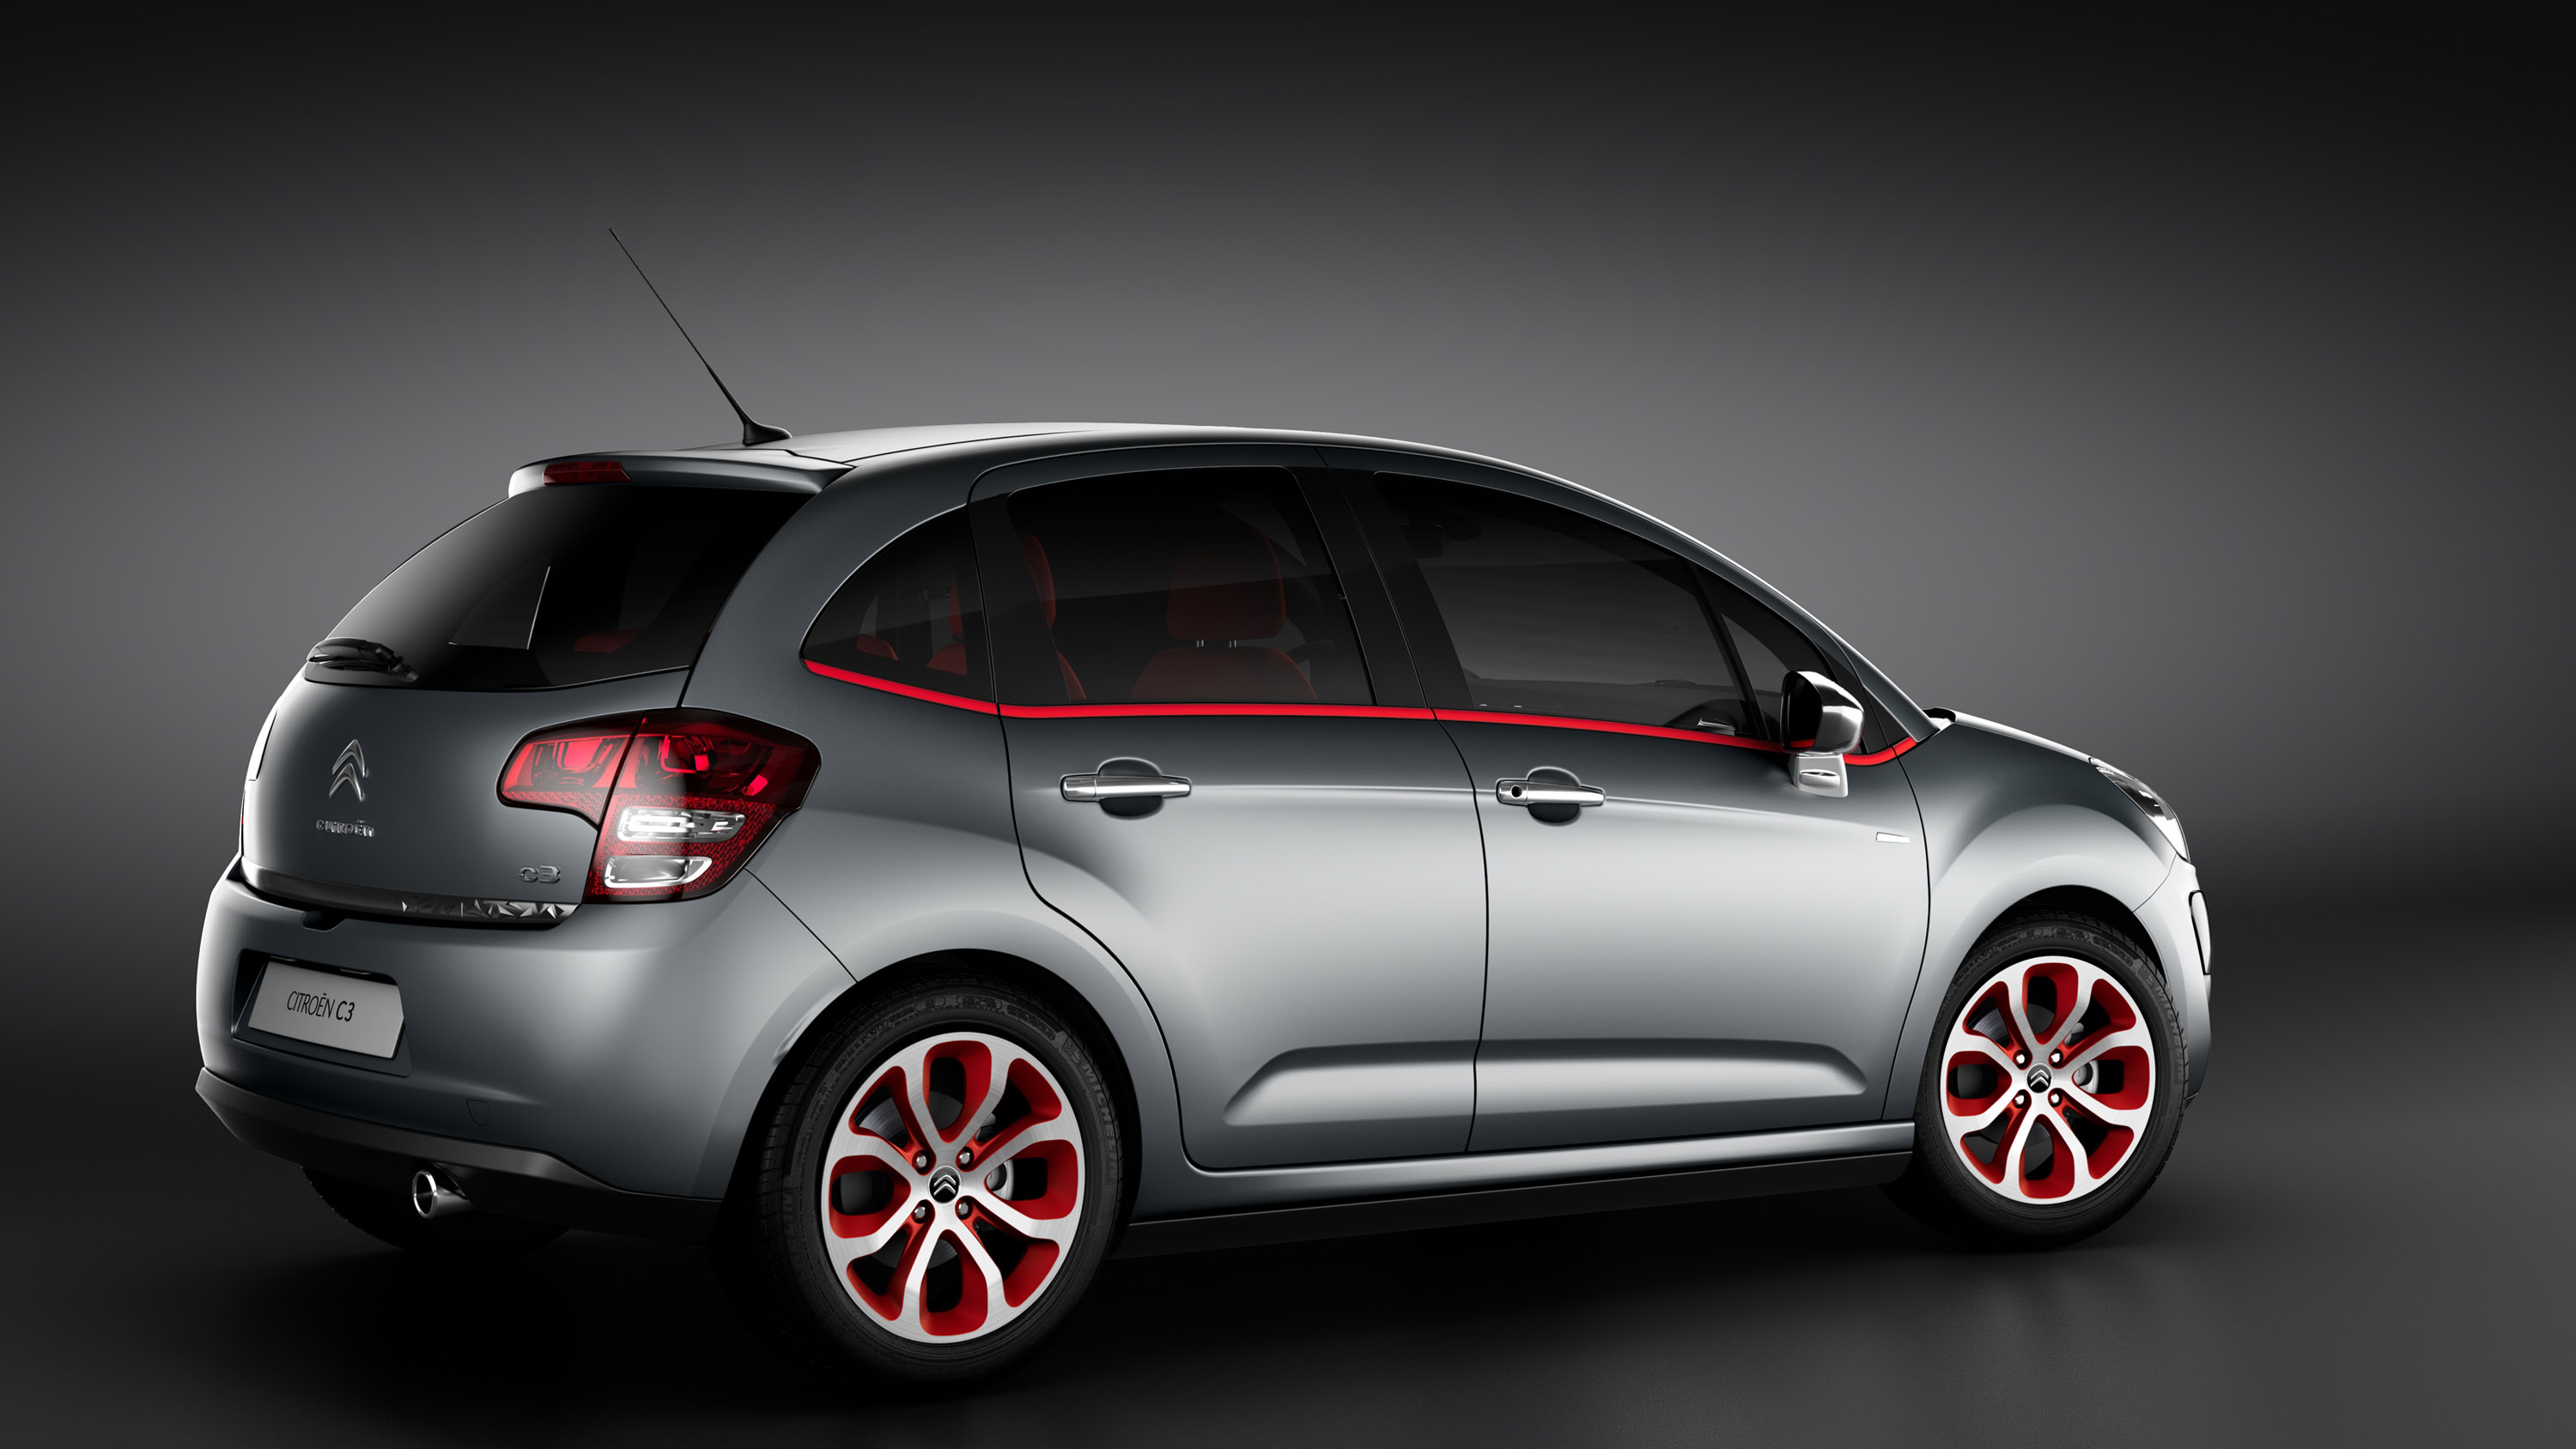 Citroen C3 Red Block Picture #4 of 6